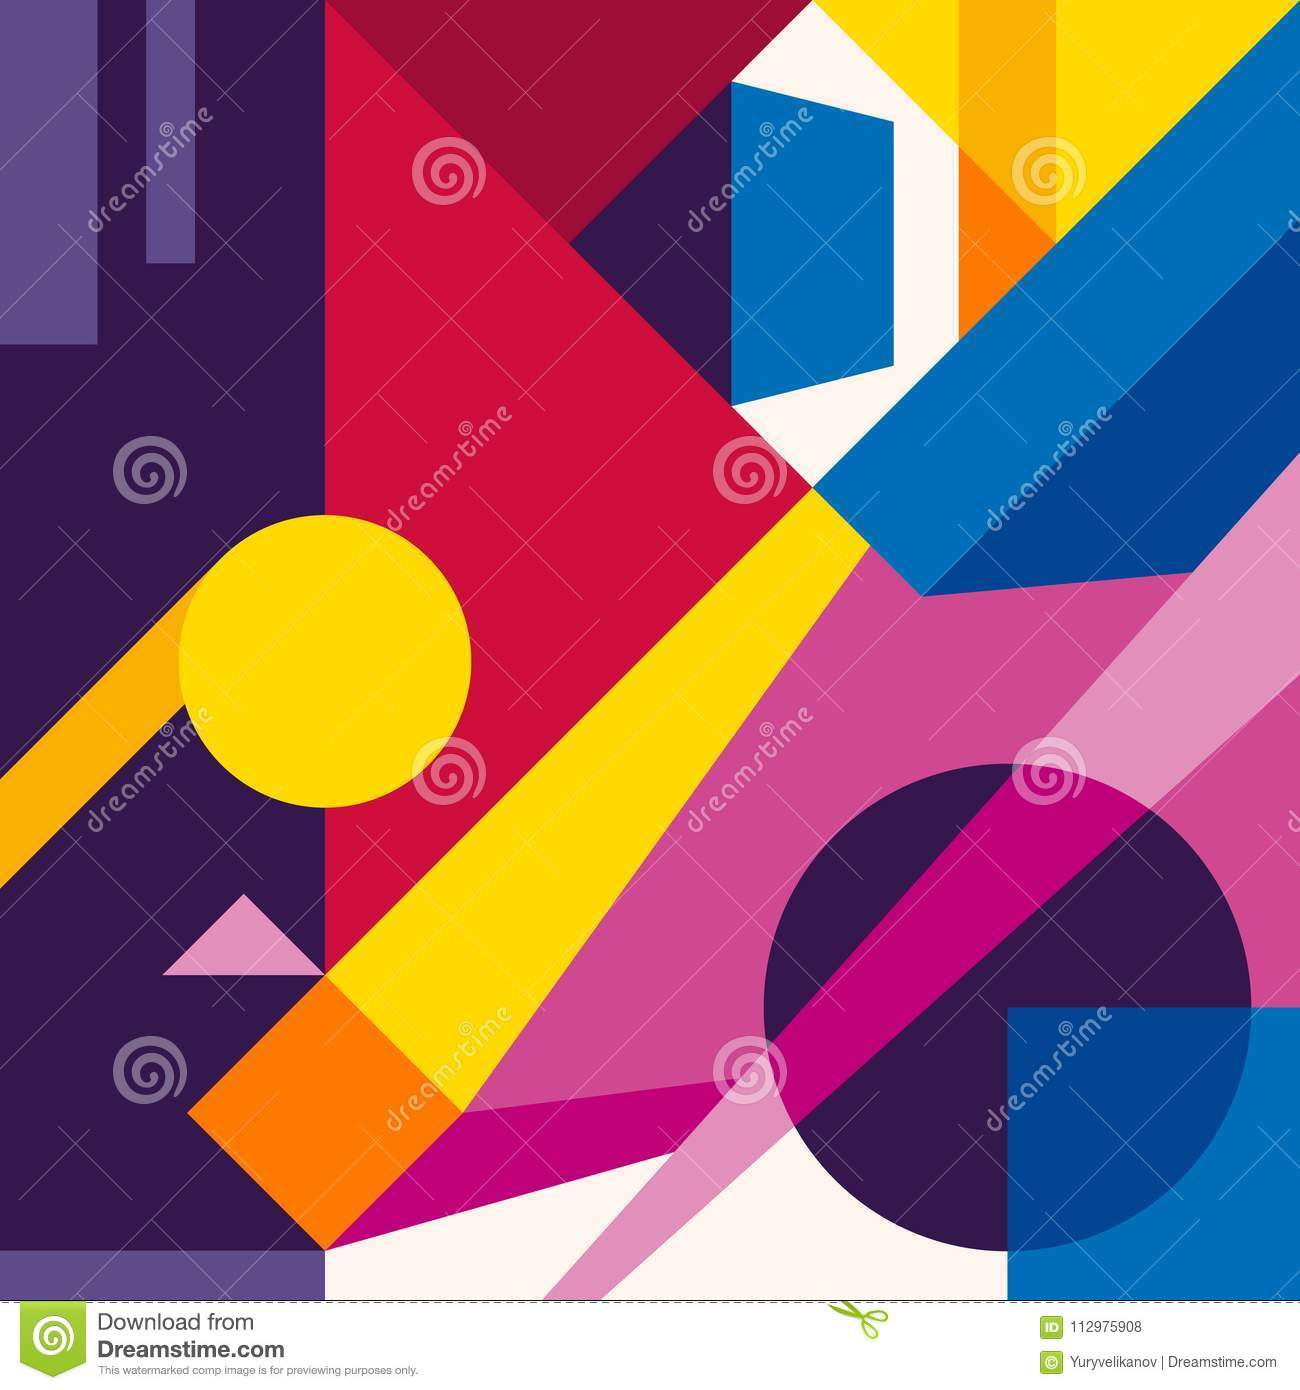 Abstract modern geometric design background. Composition 6